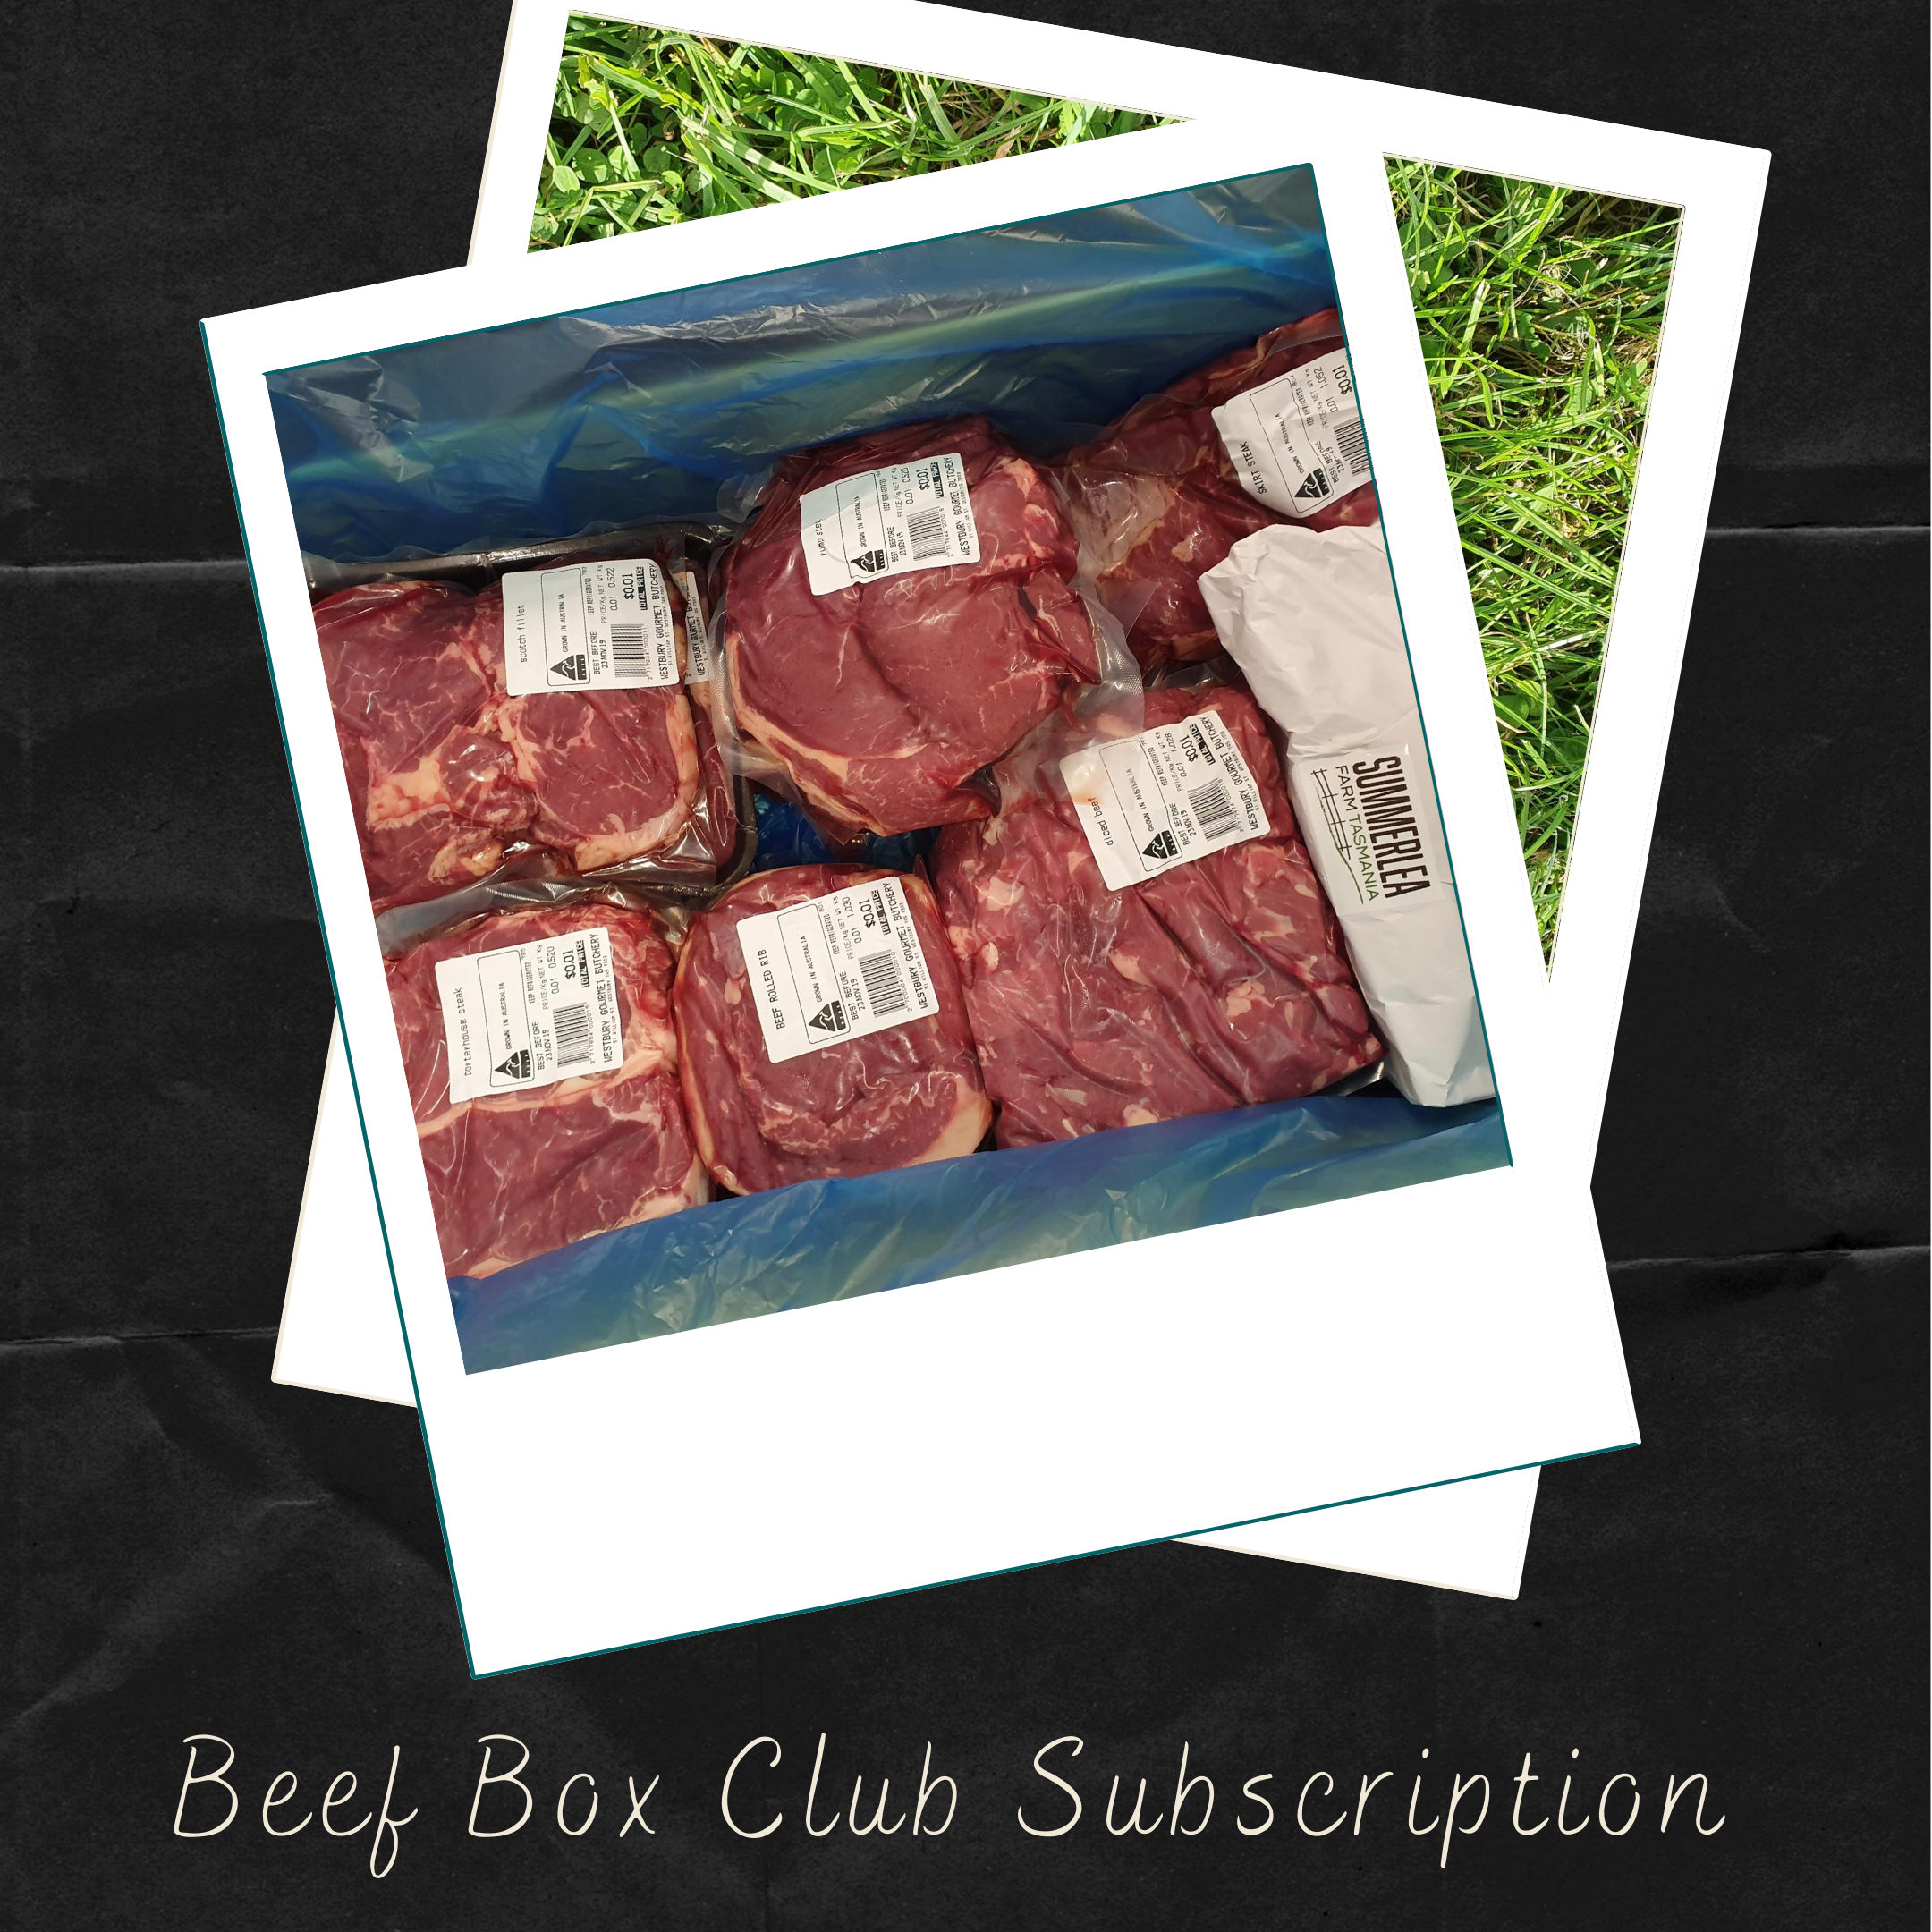 Grass fed Angus beef packaged and boxed ready for distribution